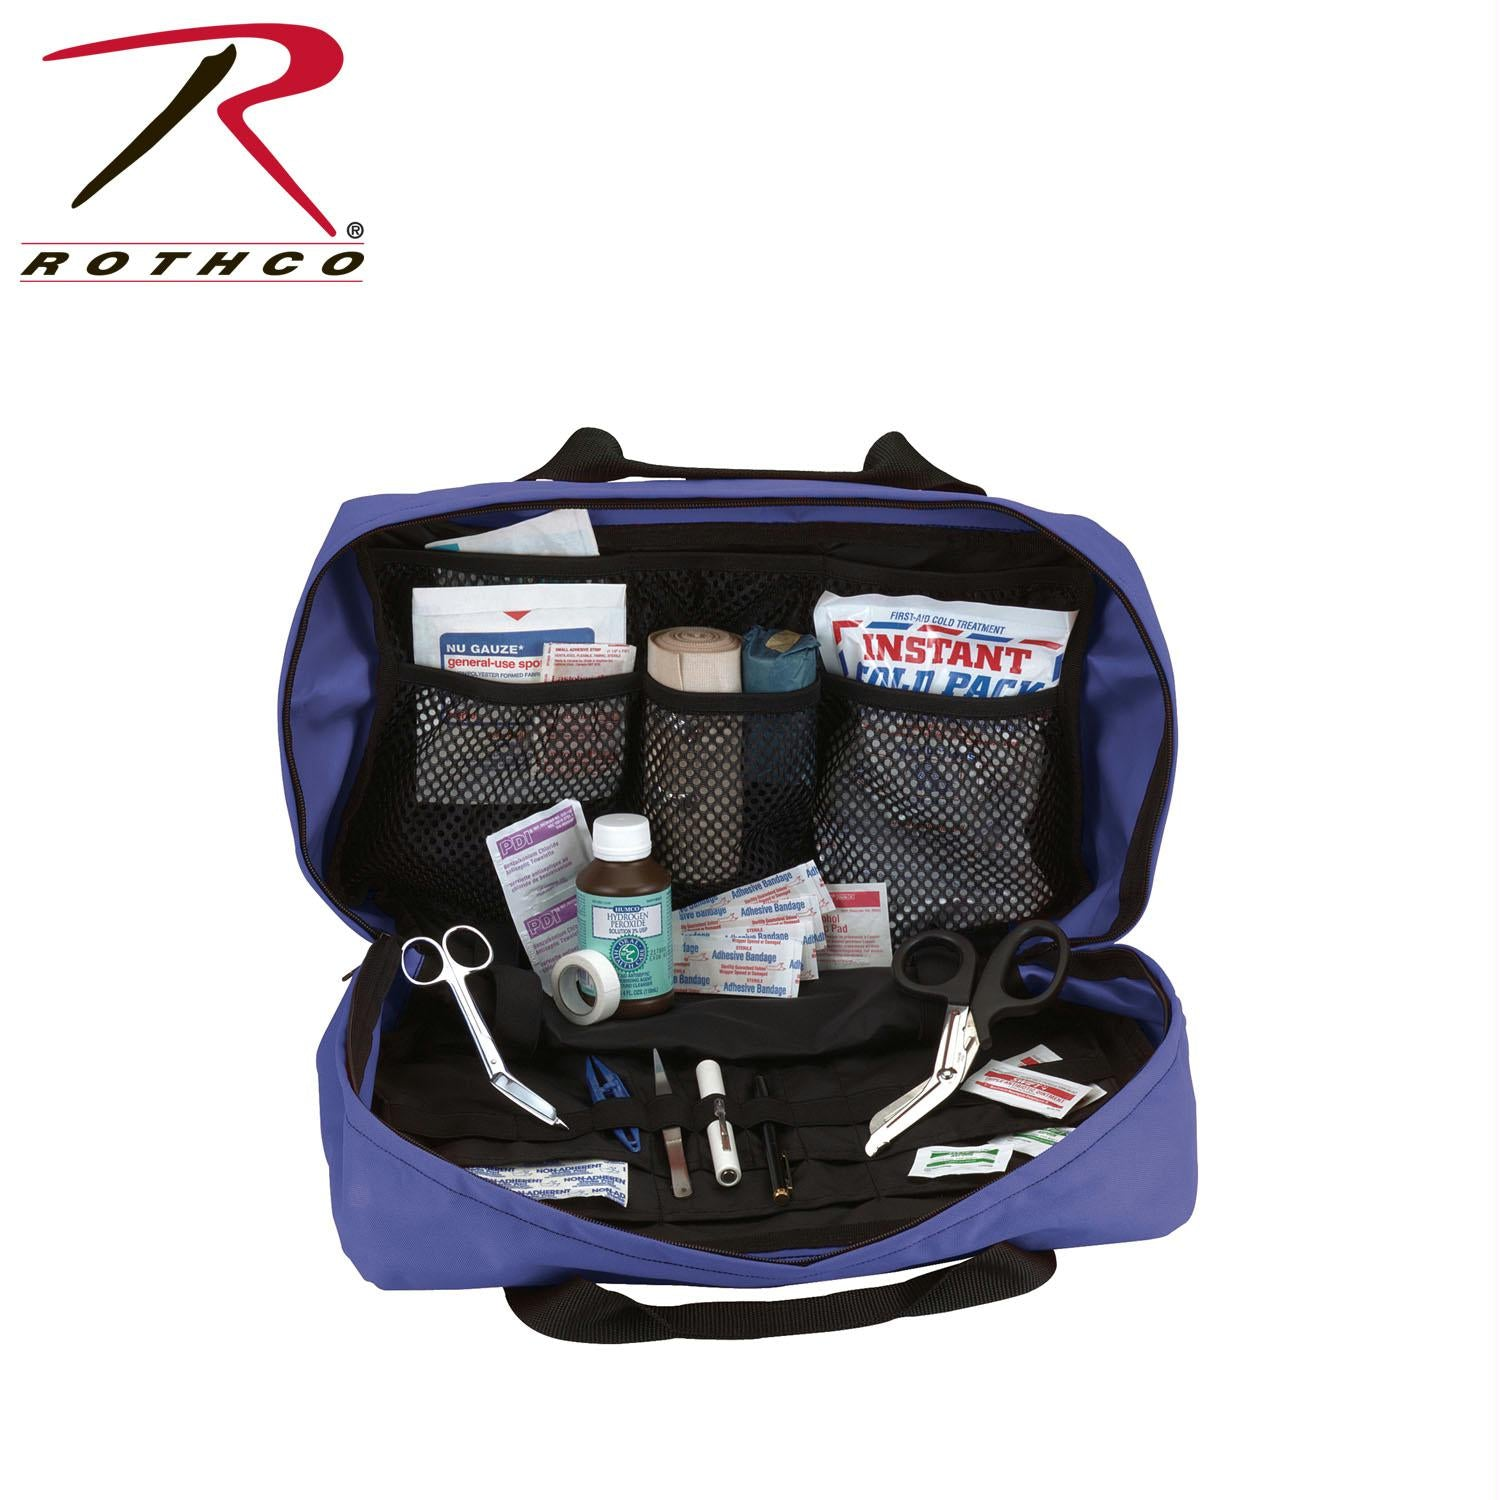 Rothco EMS Trauma Bag - Navy Blue